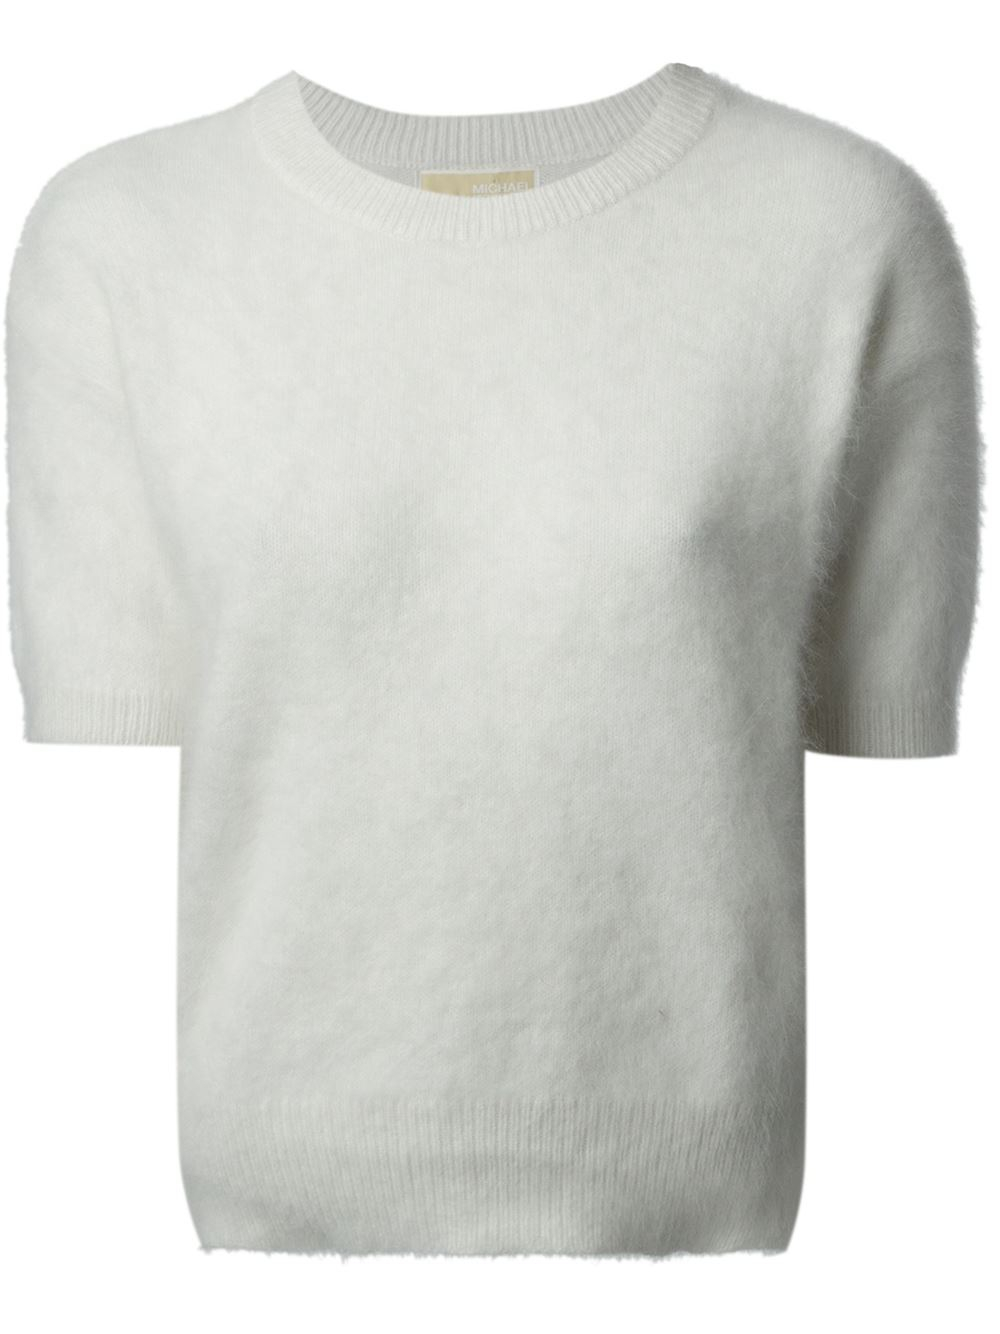 Michael michael kors Short Sleeve Sweater in White | Lyst